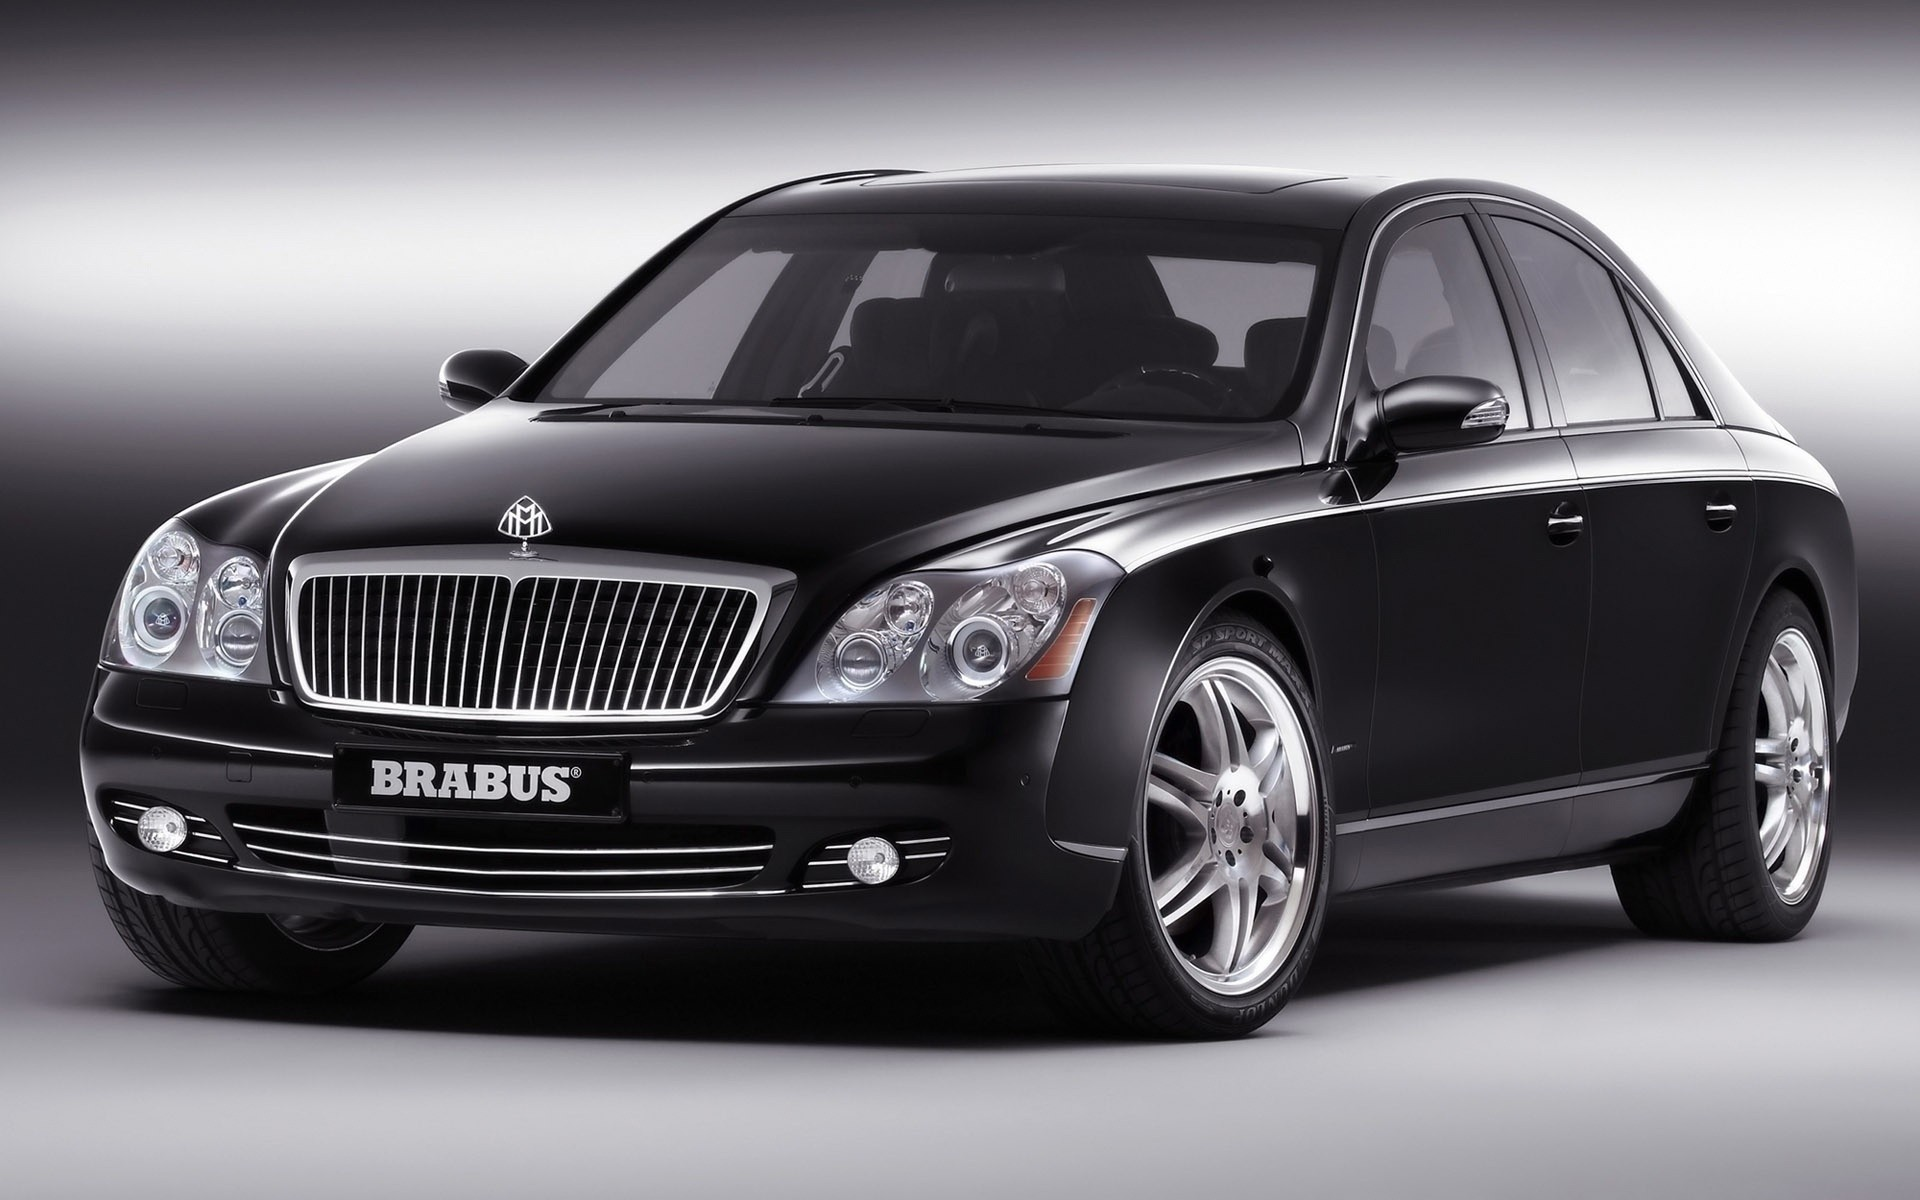 maybach car vehicle wheel automotive coupe transportation system sedan drive fast hood